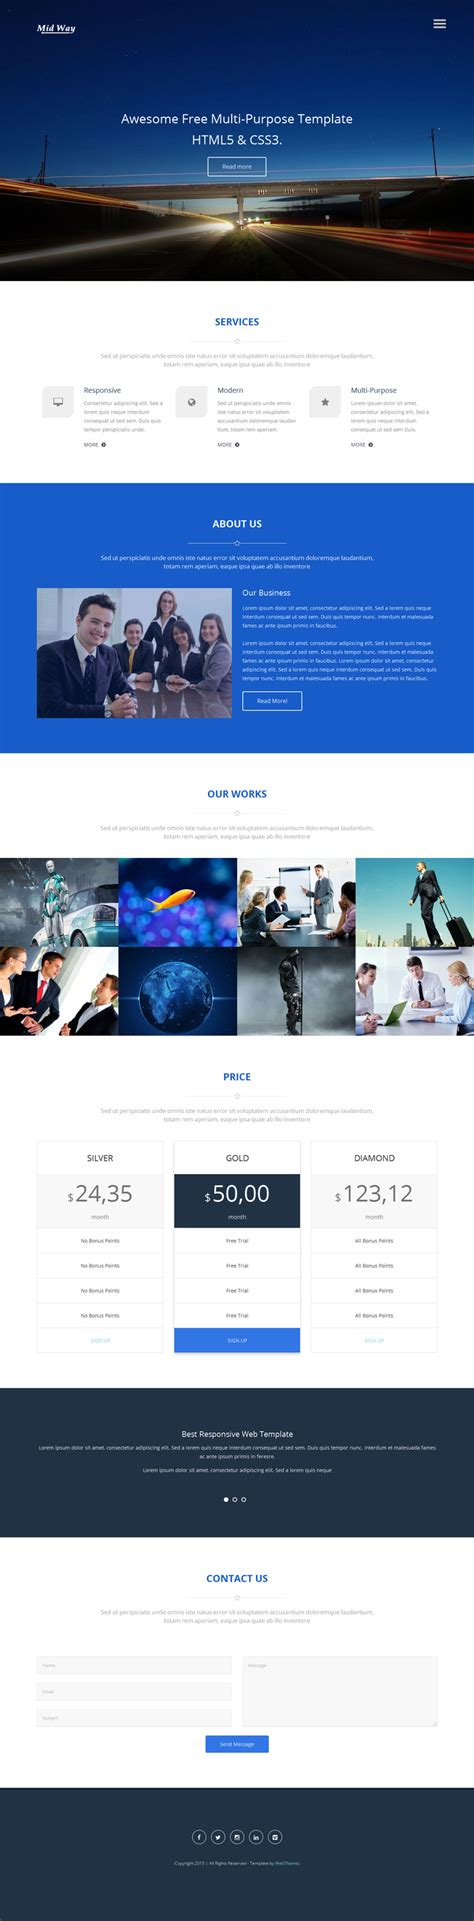 10 Best Free Website Html5 Templates February 2015 Website Template Html5 Free